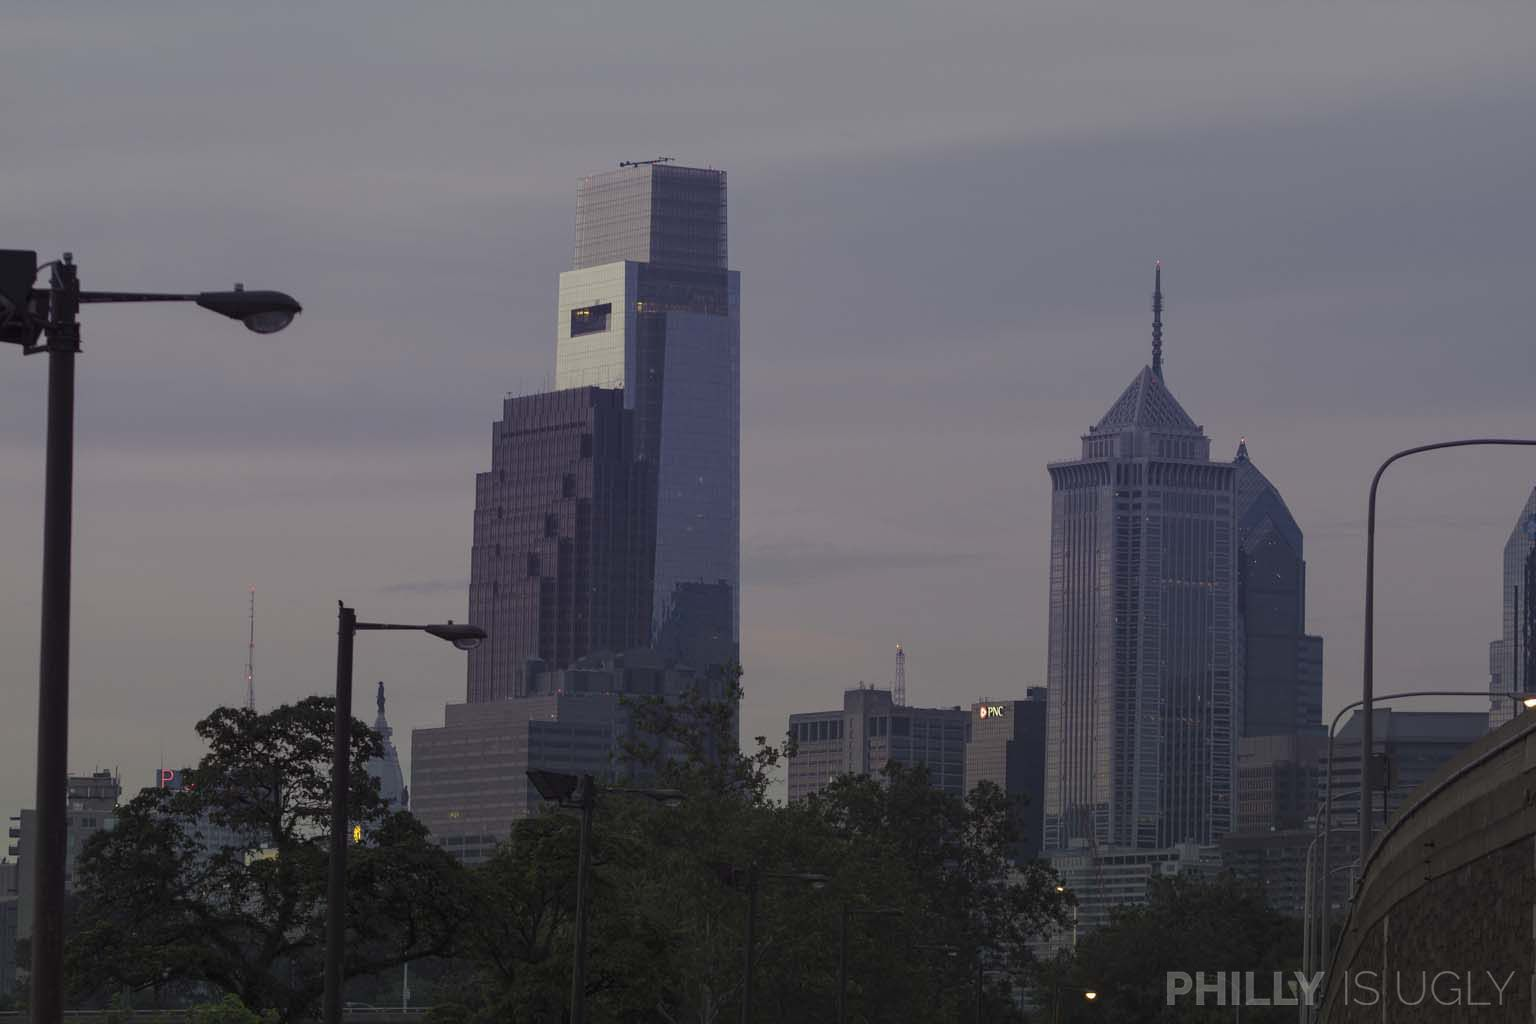 """WATCH: """"Philly Is Ugly"""" a beautiful timelapse film of Philadelphia by Nathaniel Dodson  http://Phillyisugly.com"""